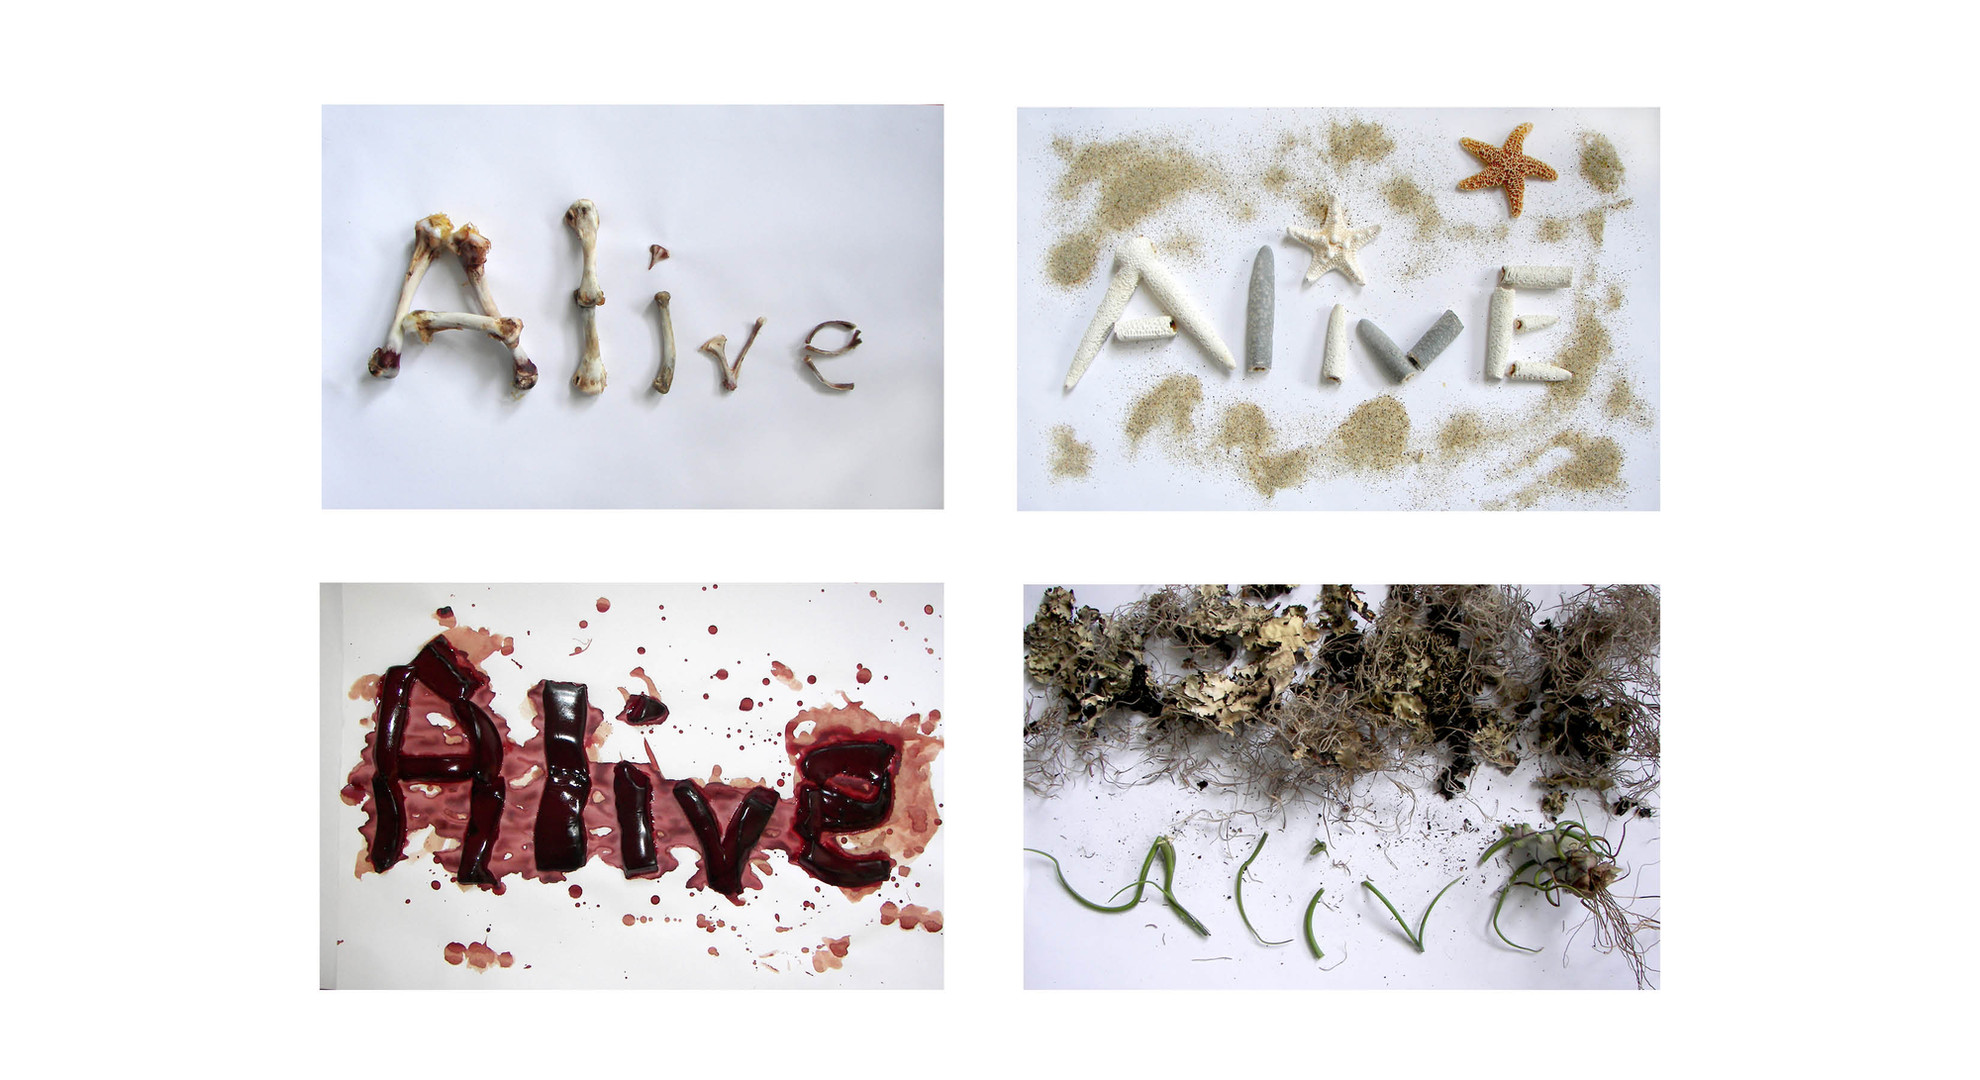 Definition of Alive